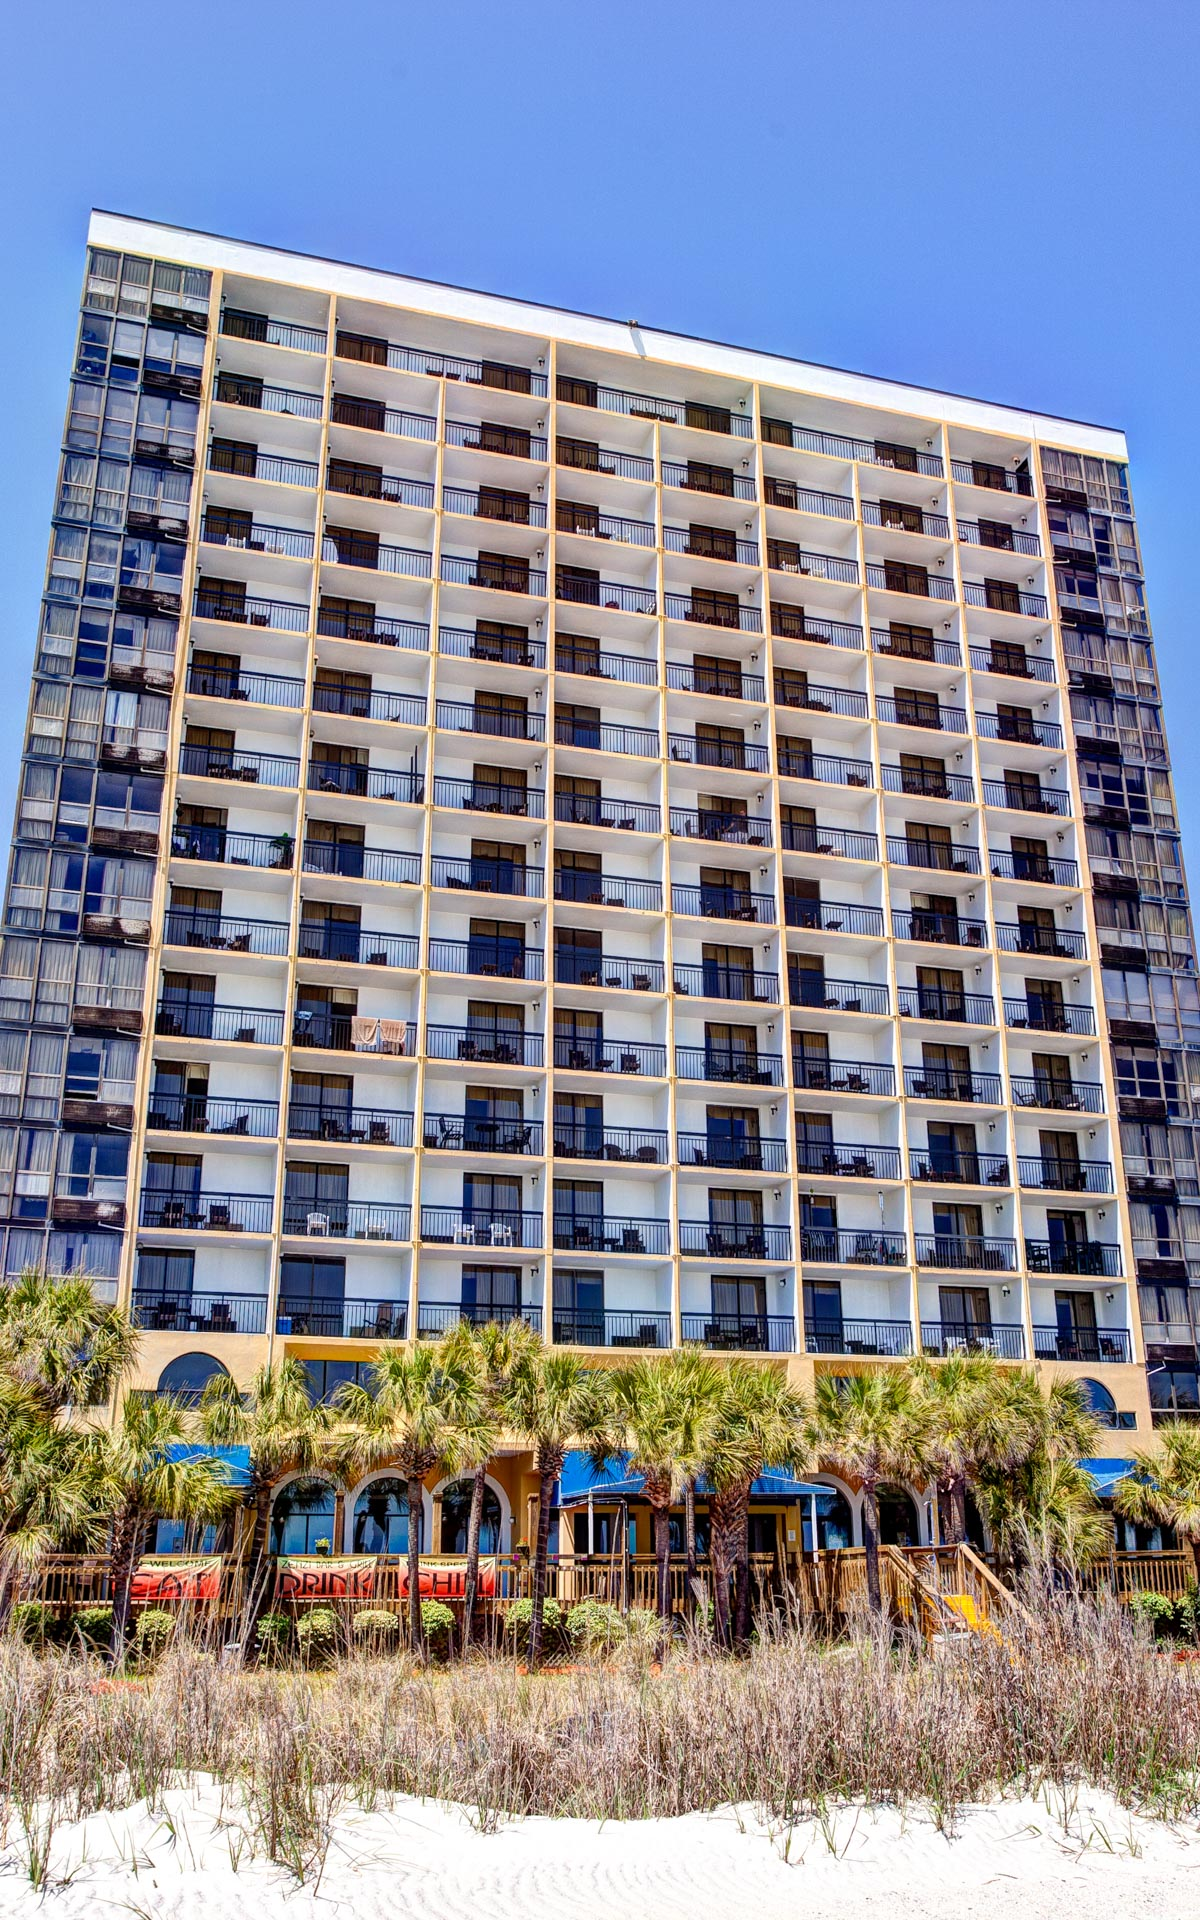 Exterior Of The Sun N Sand Building On Myrtle Beach